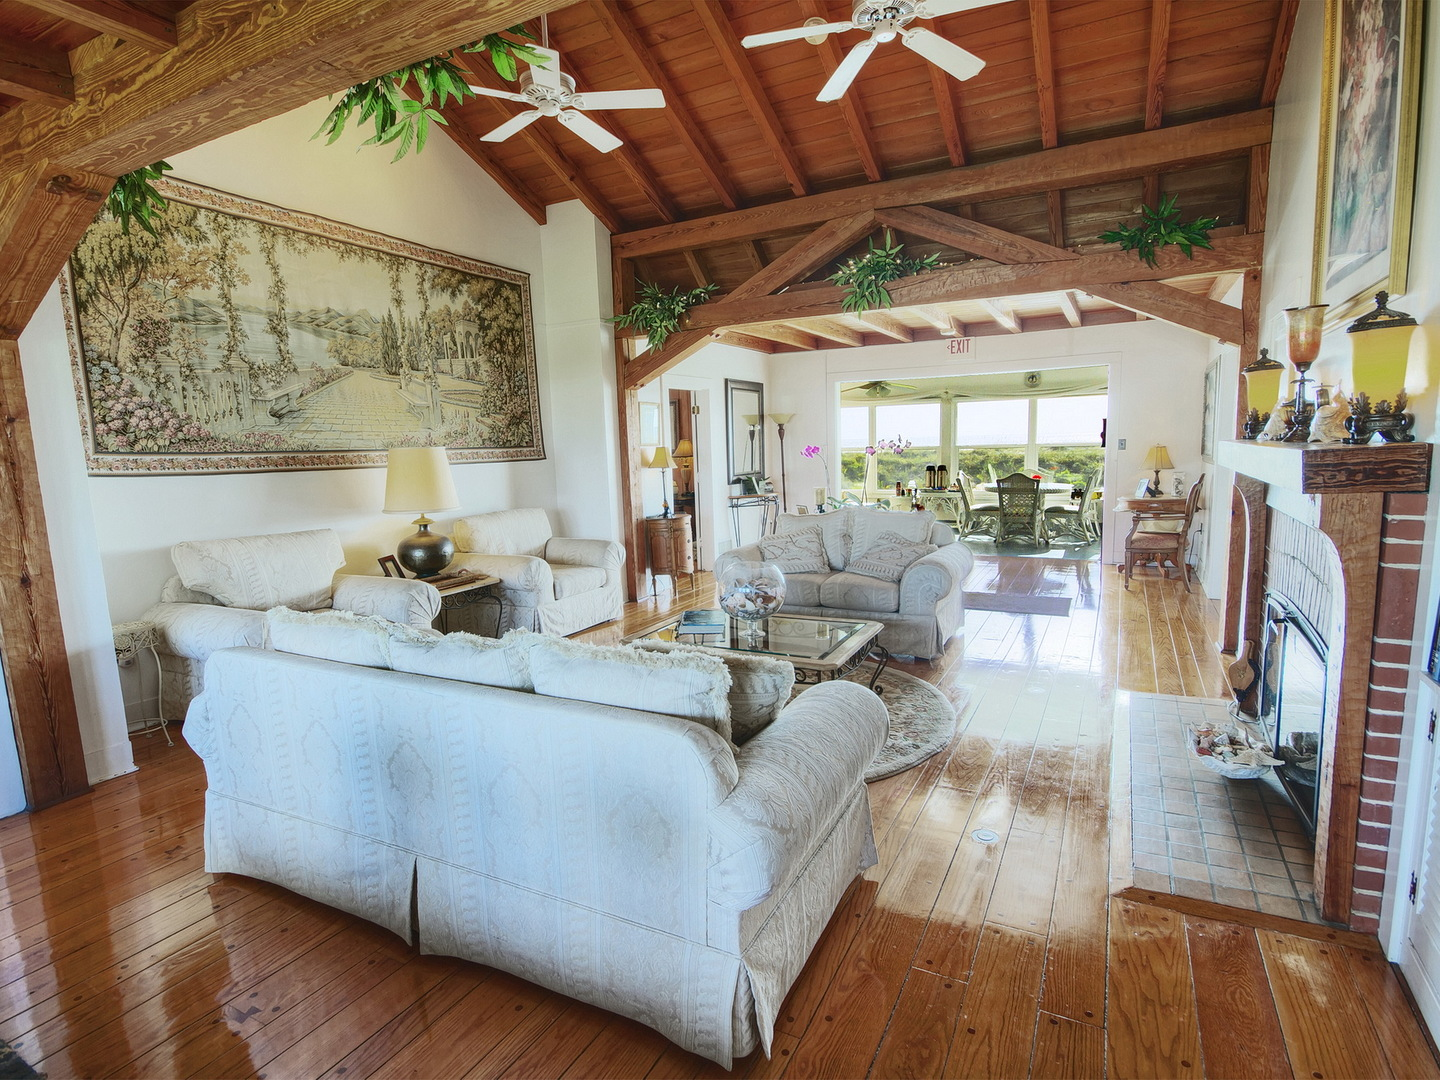 A living room filled with furniture and a fireplace at Beachfront Bed & Breakfast.